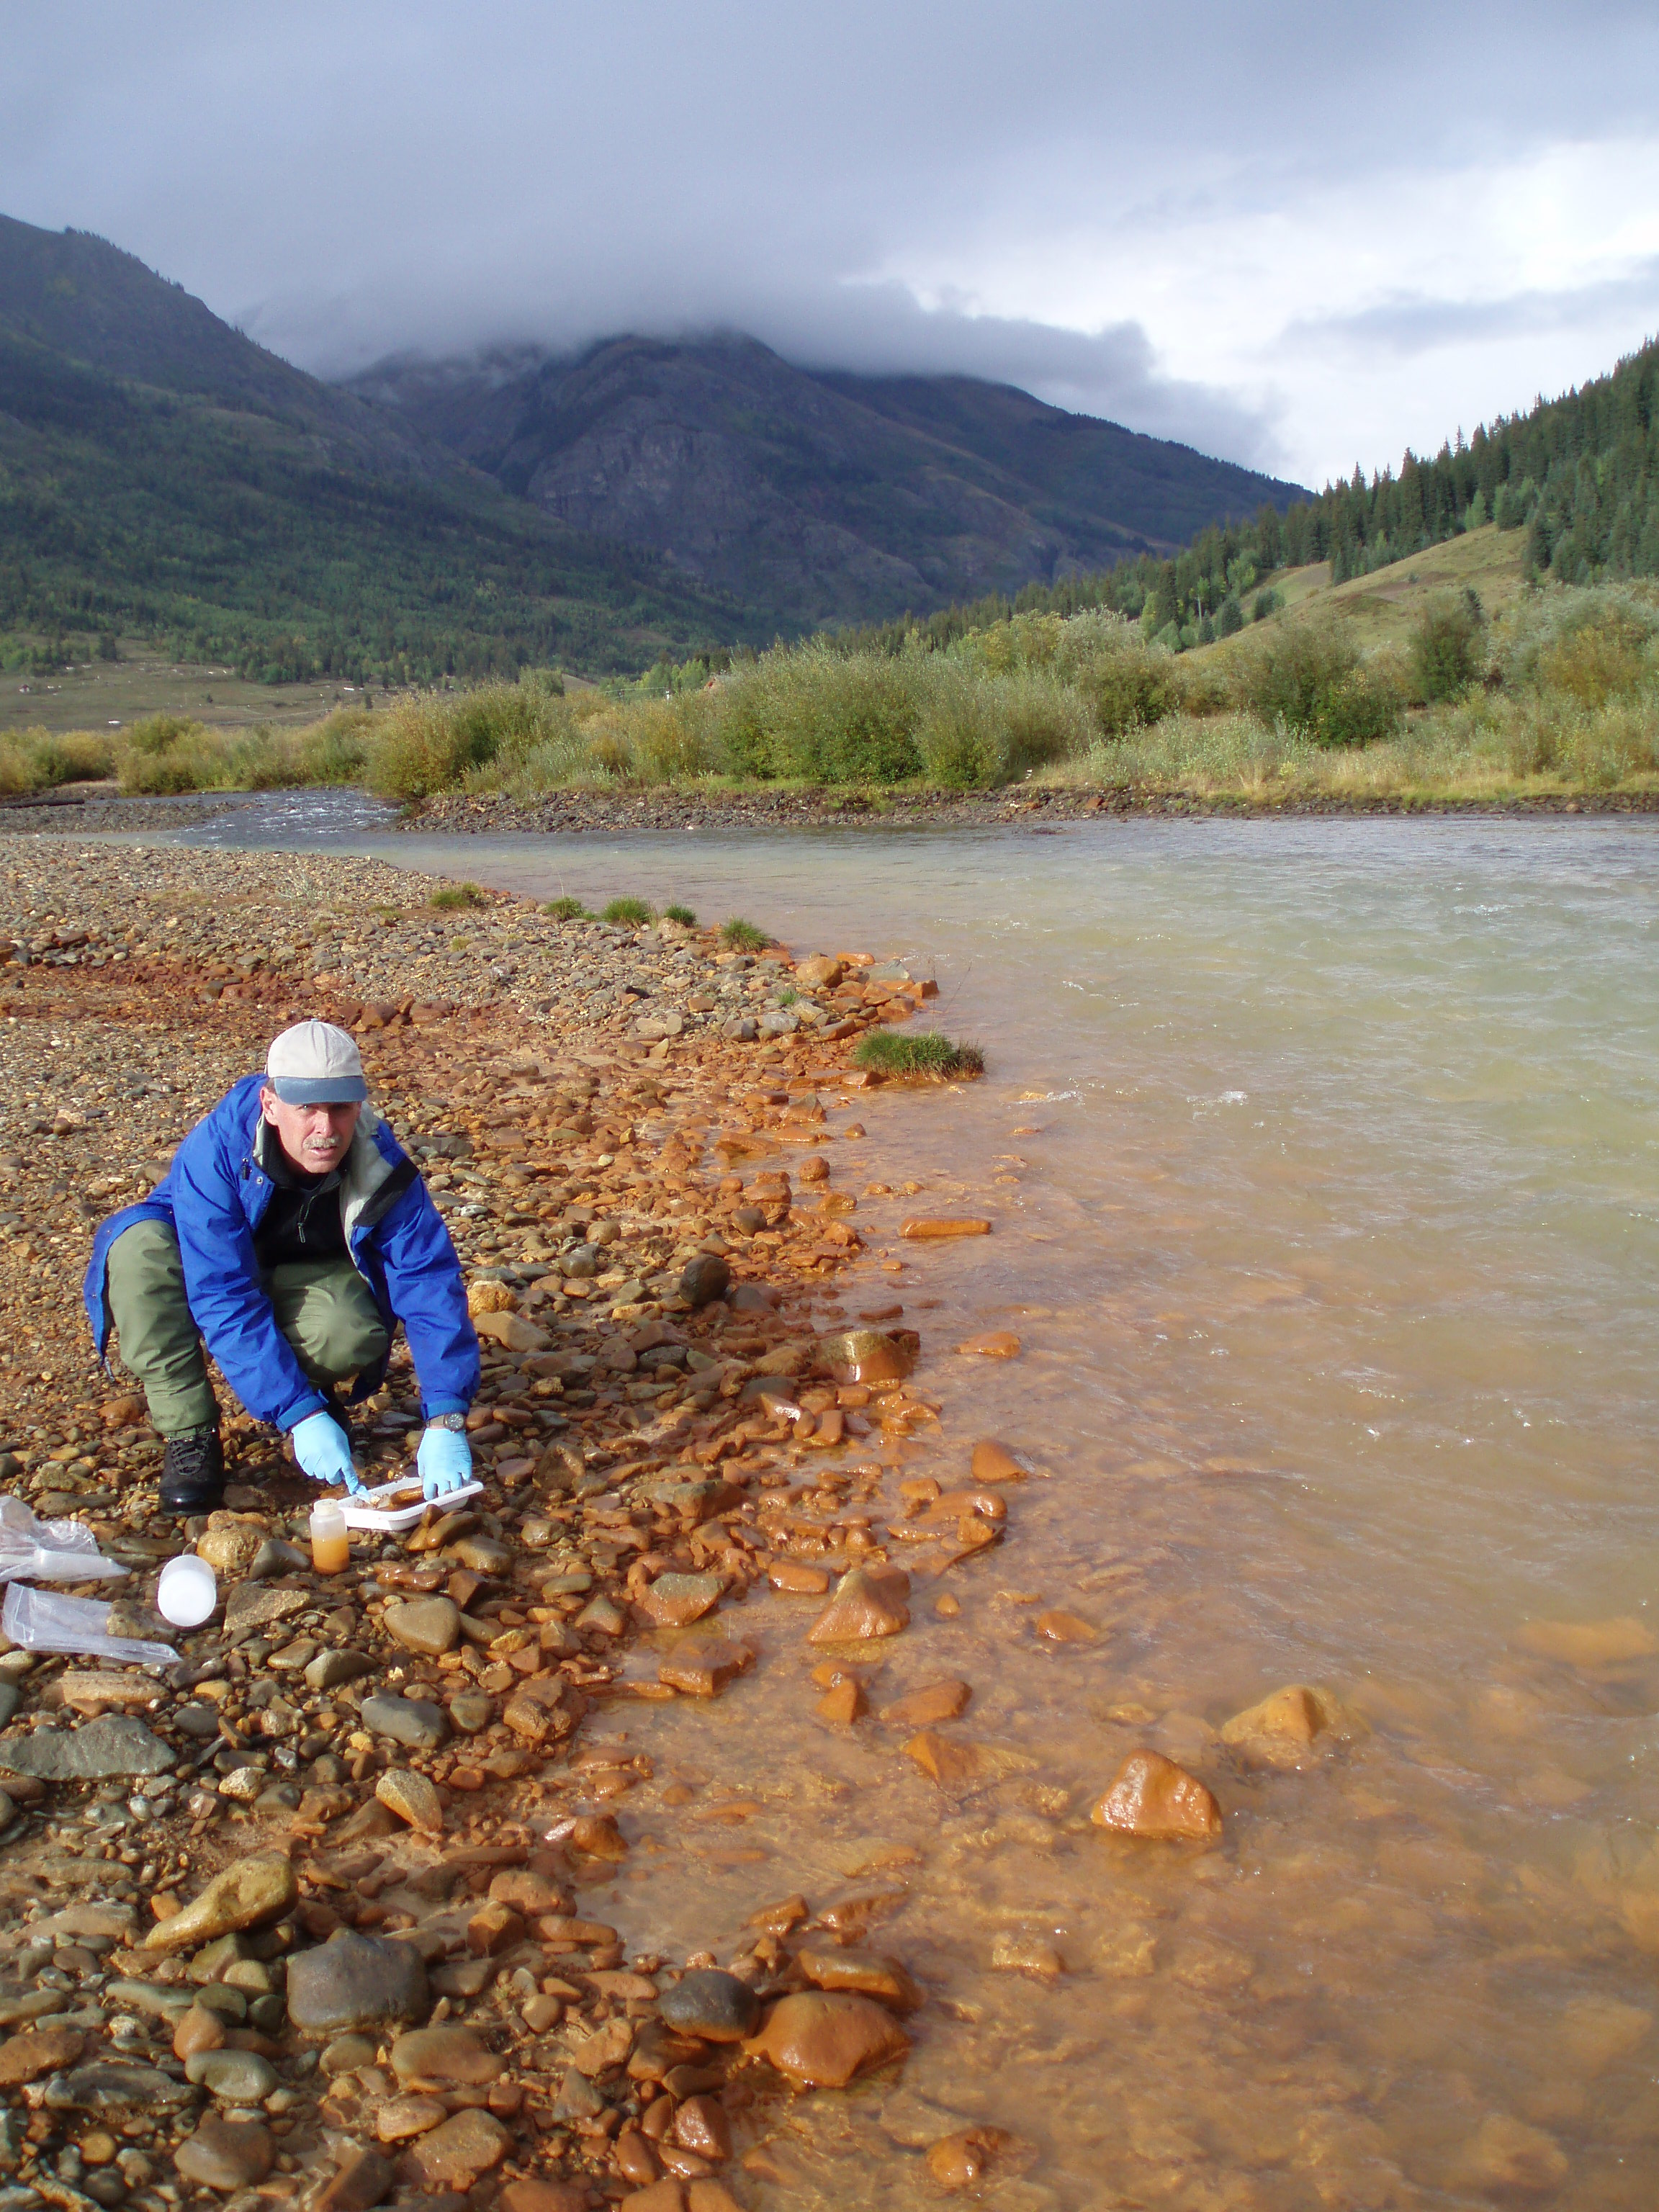 USGS scientist collecting a water sample from a gravel bar on side of a river.